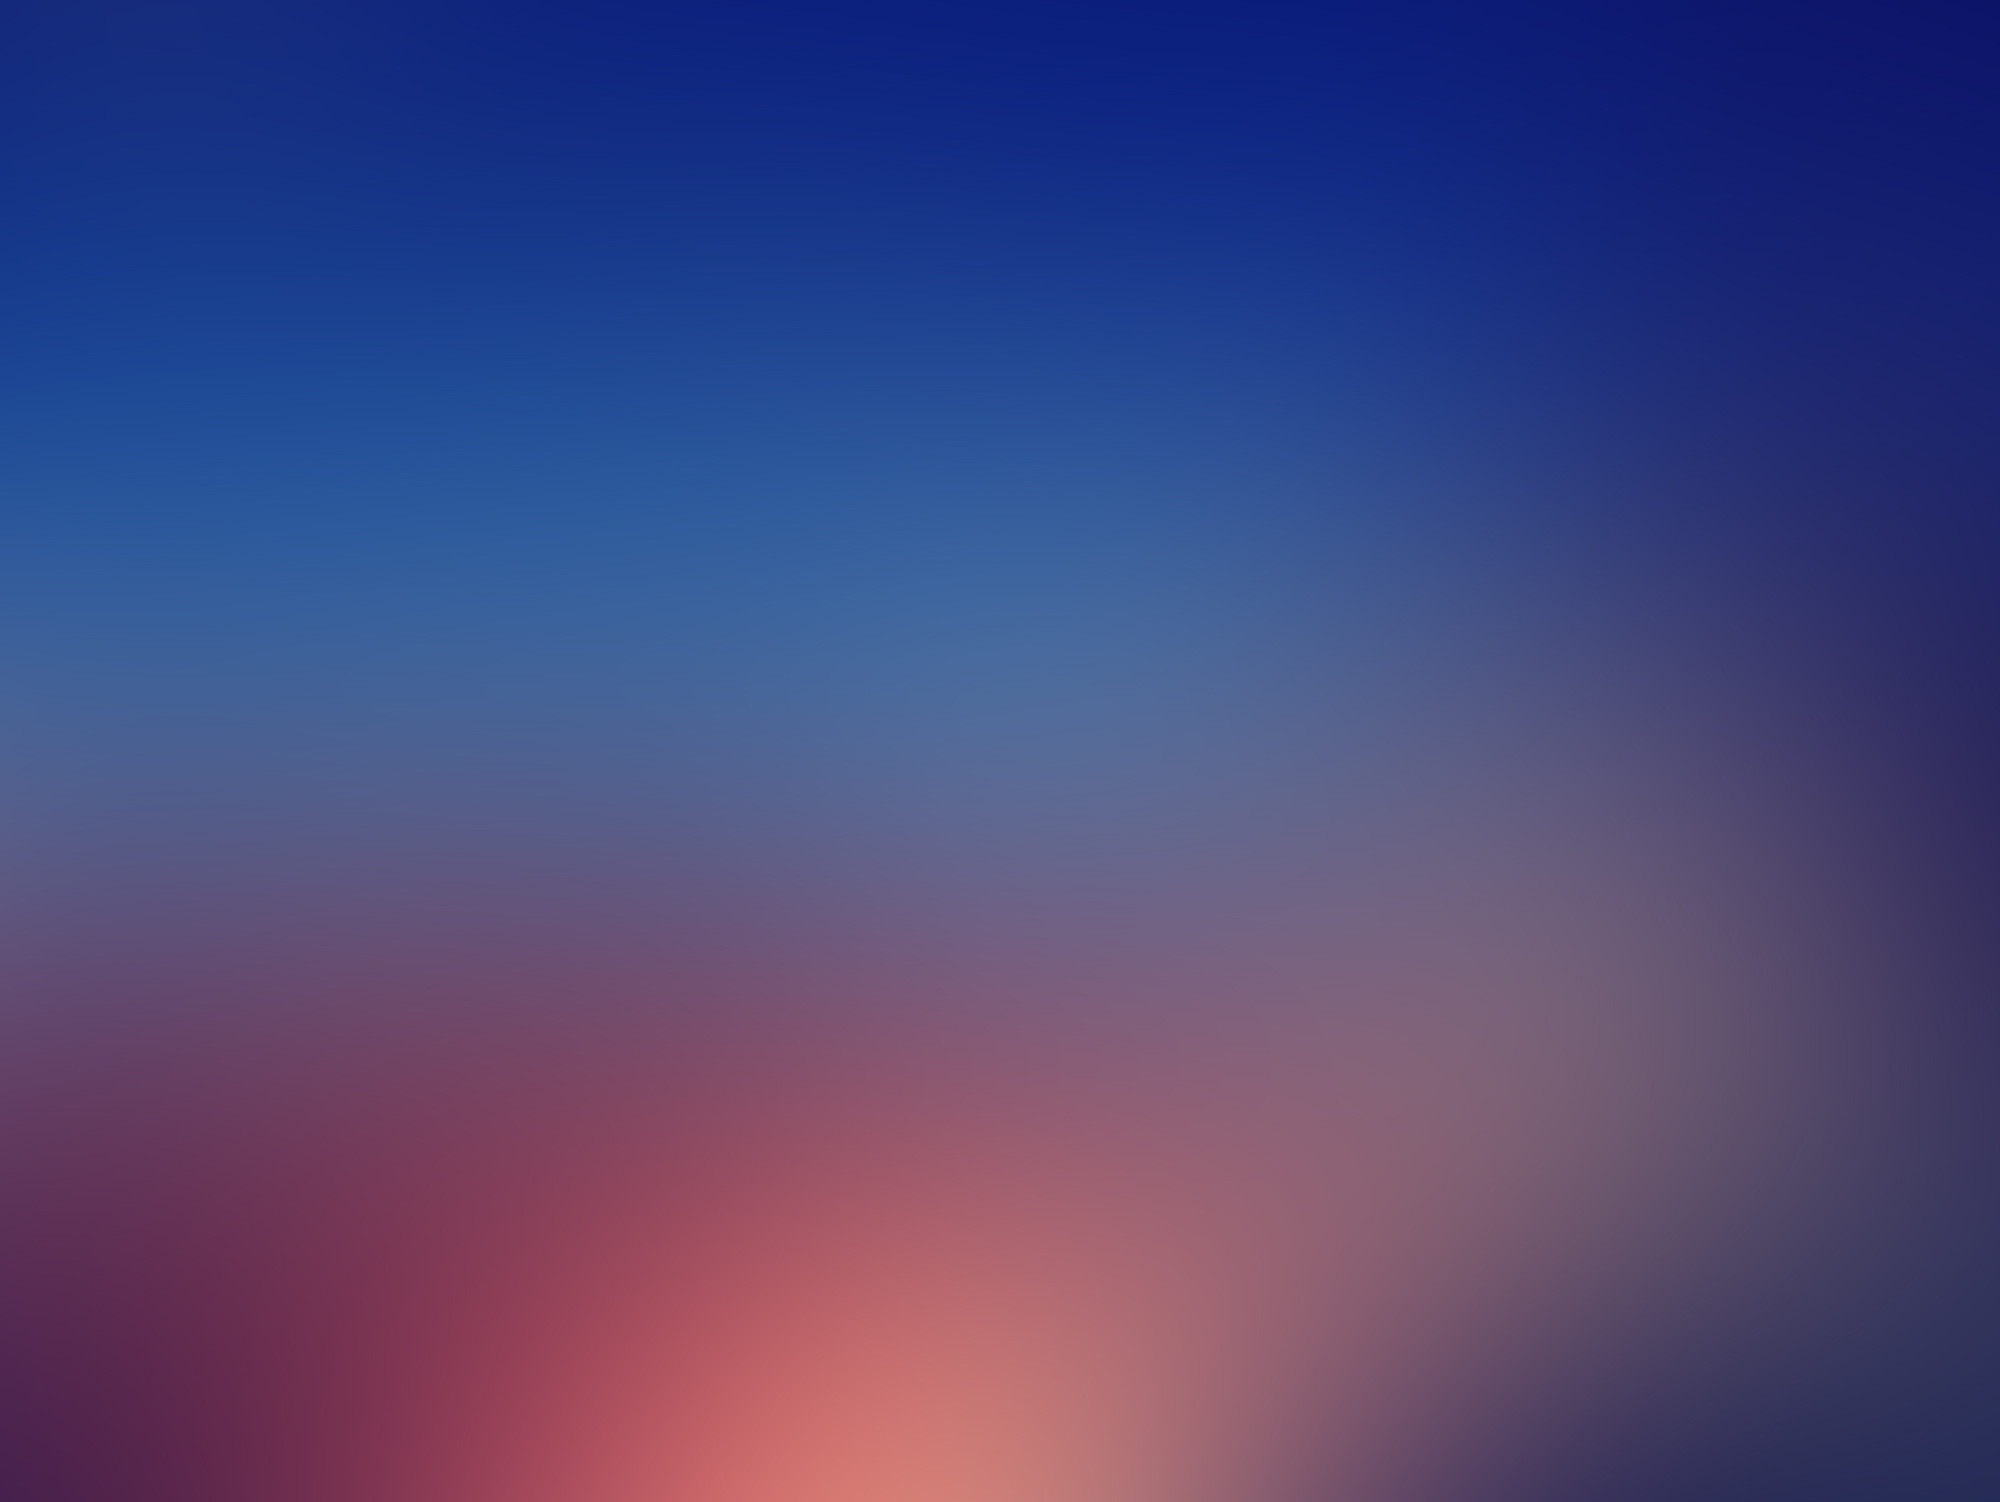 Free HD Solid Color Wallpaper Download.